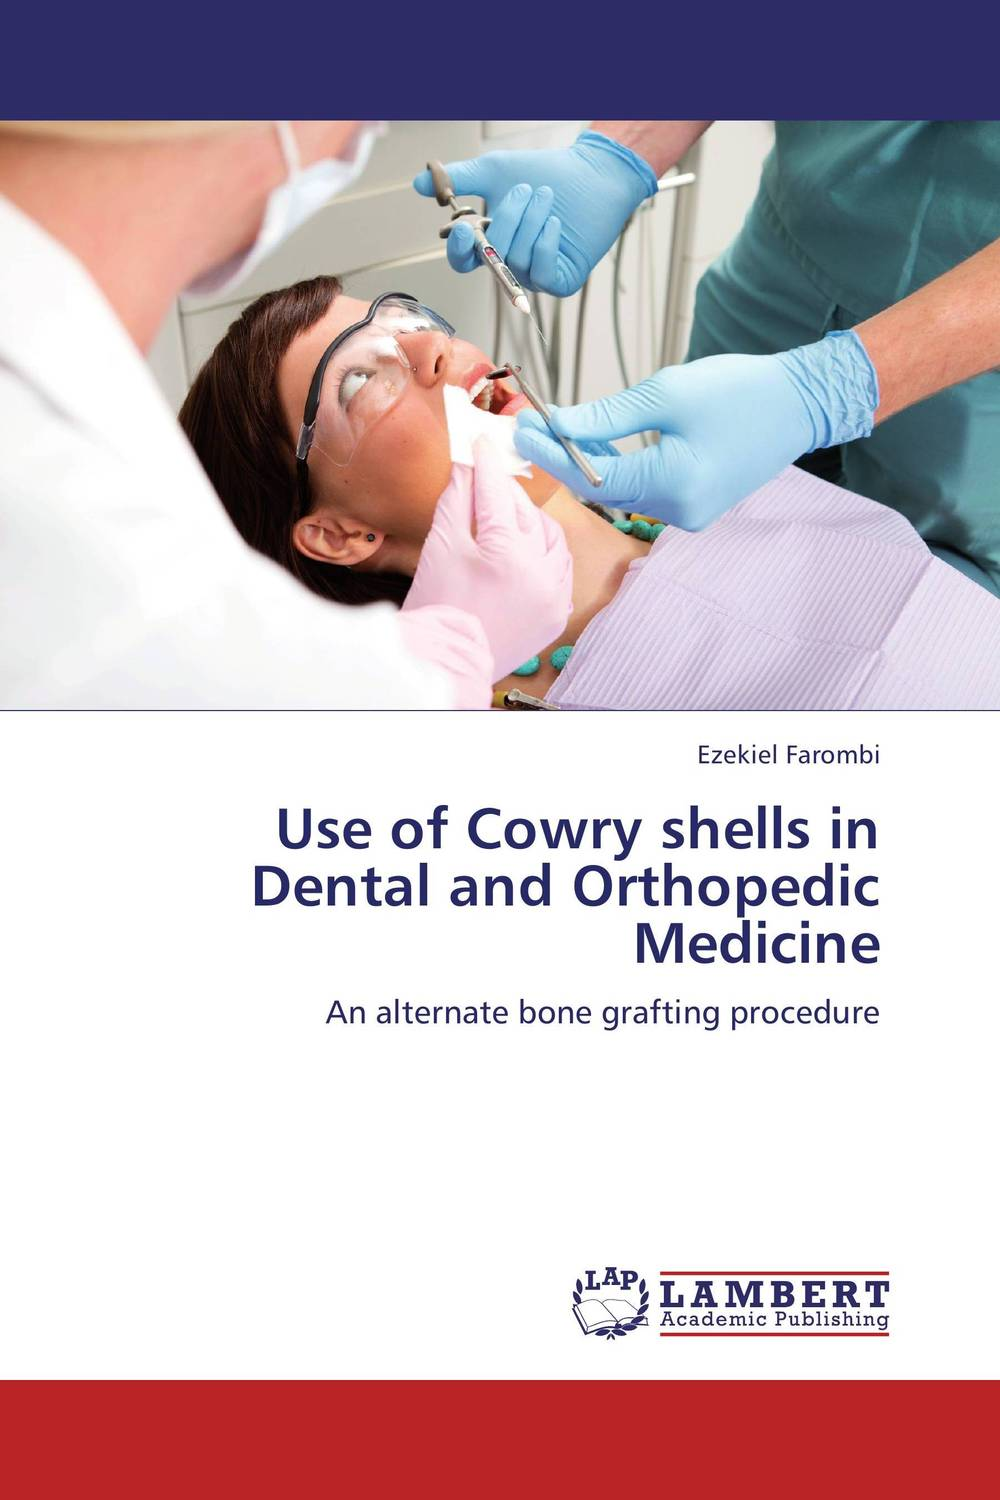 Use of Cowry shells in Dental and Orthopedic Medicine